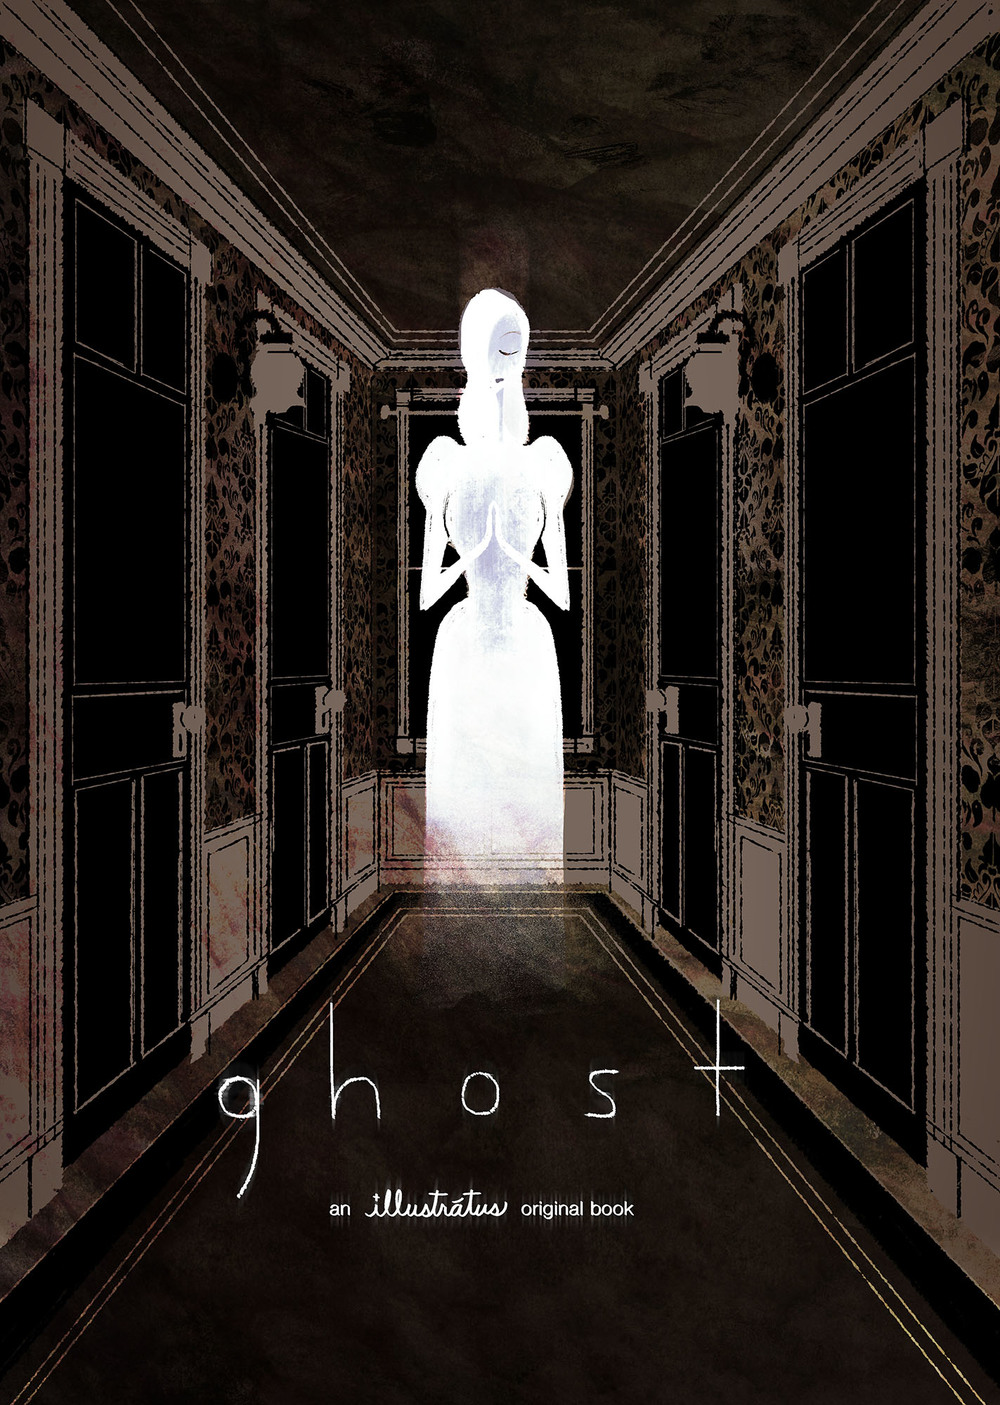 ghost_illustratus_teaser_05_v001.jpg